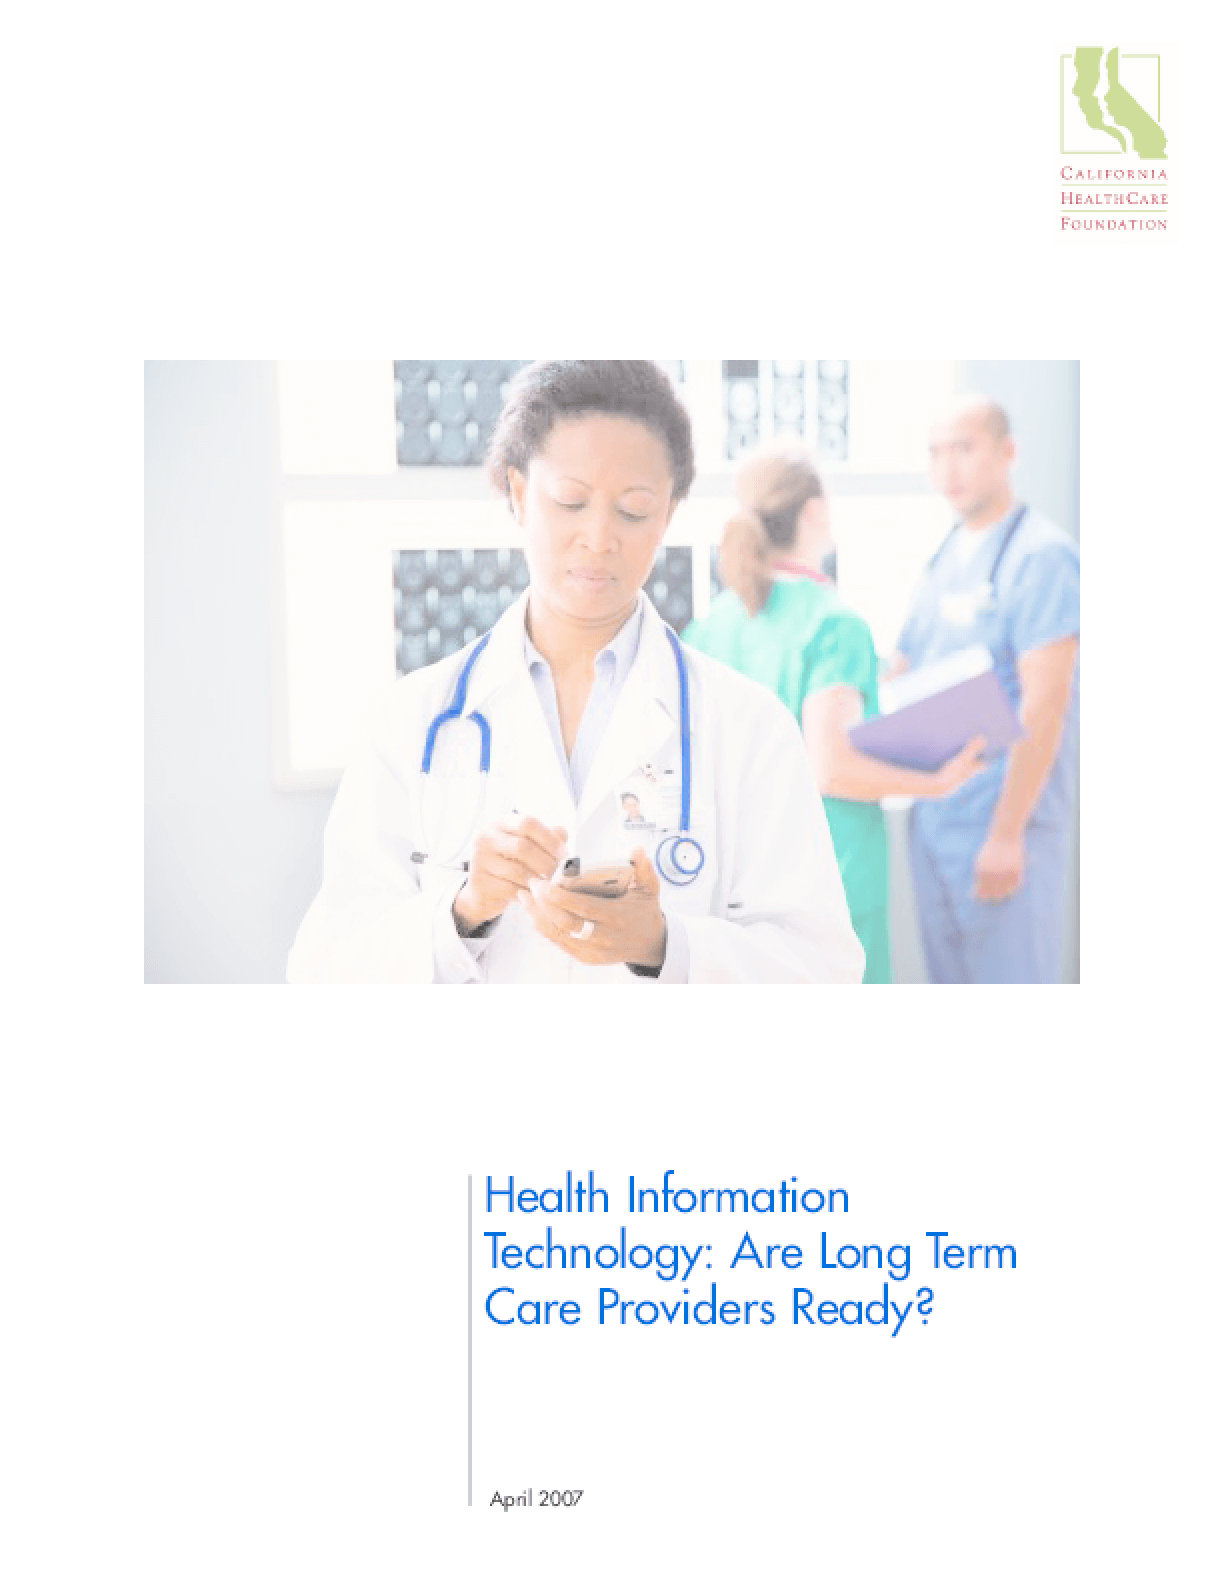 Health Information Technology: Are Long Term Care Providers Ready?